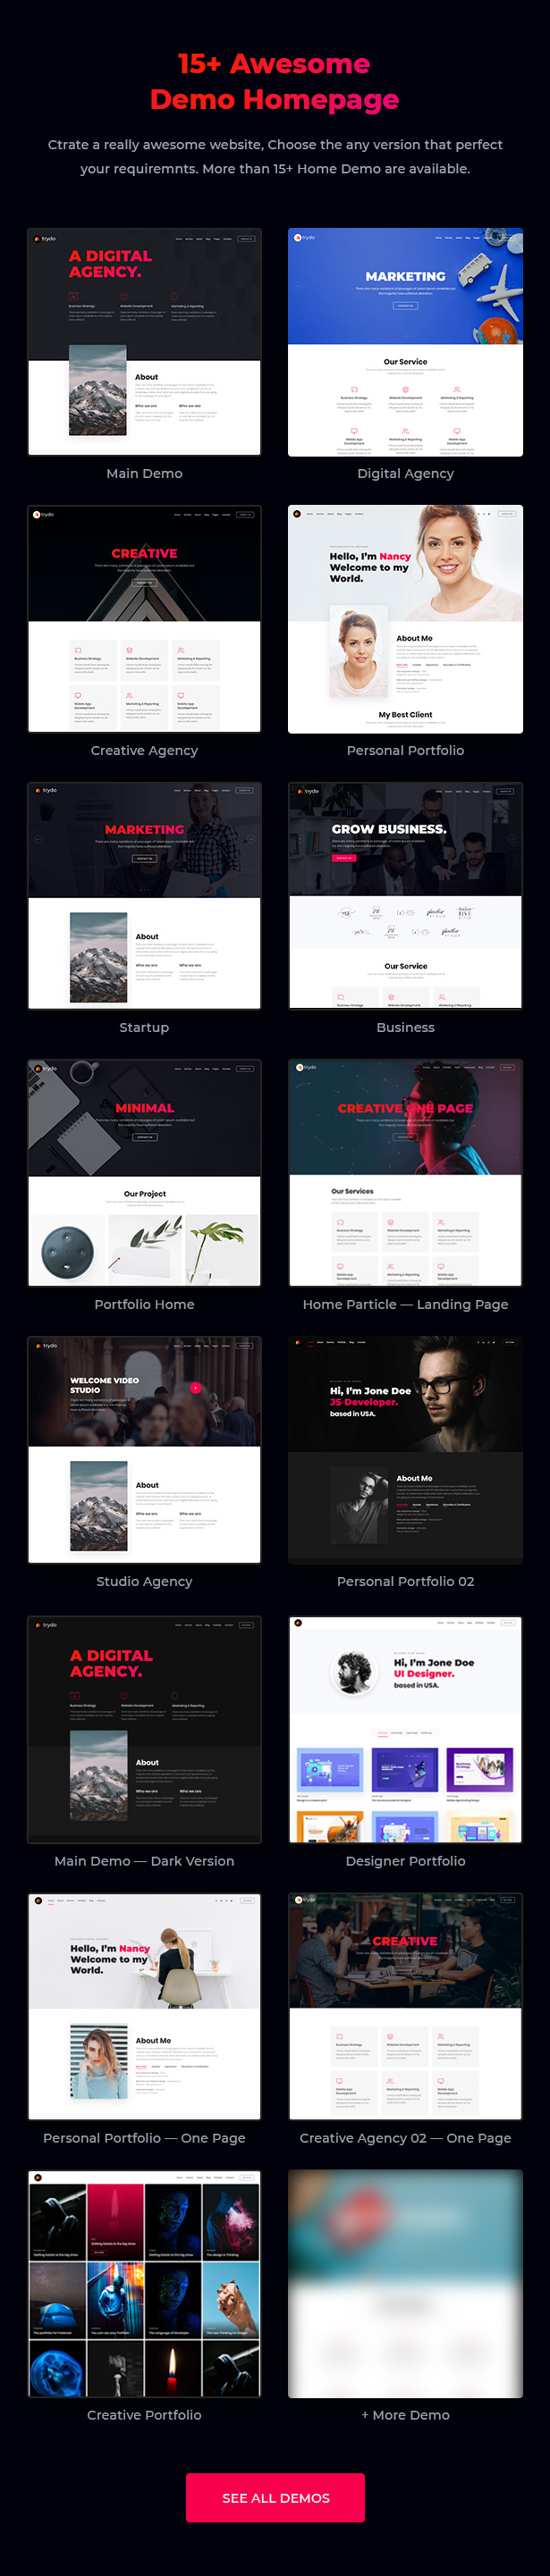 Trydo - Creative Agency and Portfolio Bootstrap Template - 7